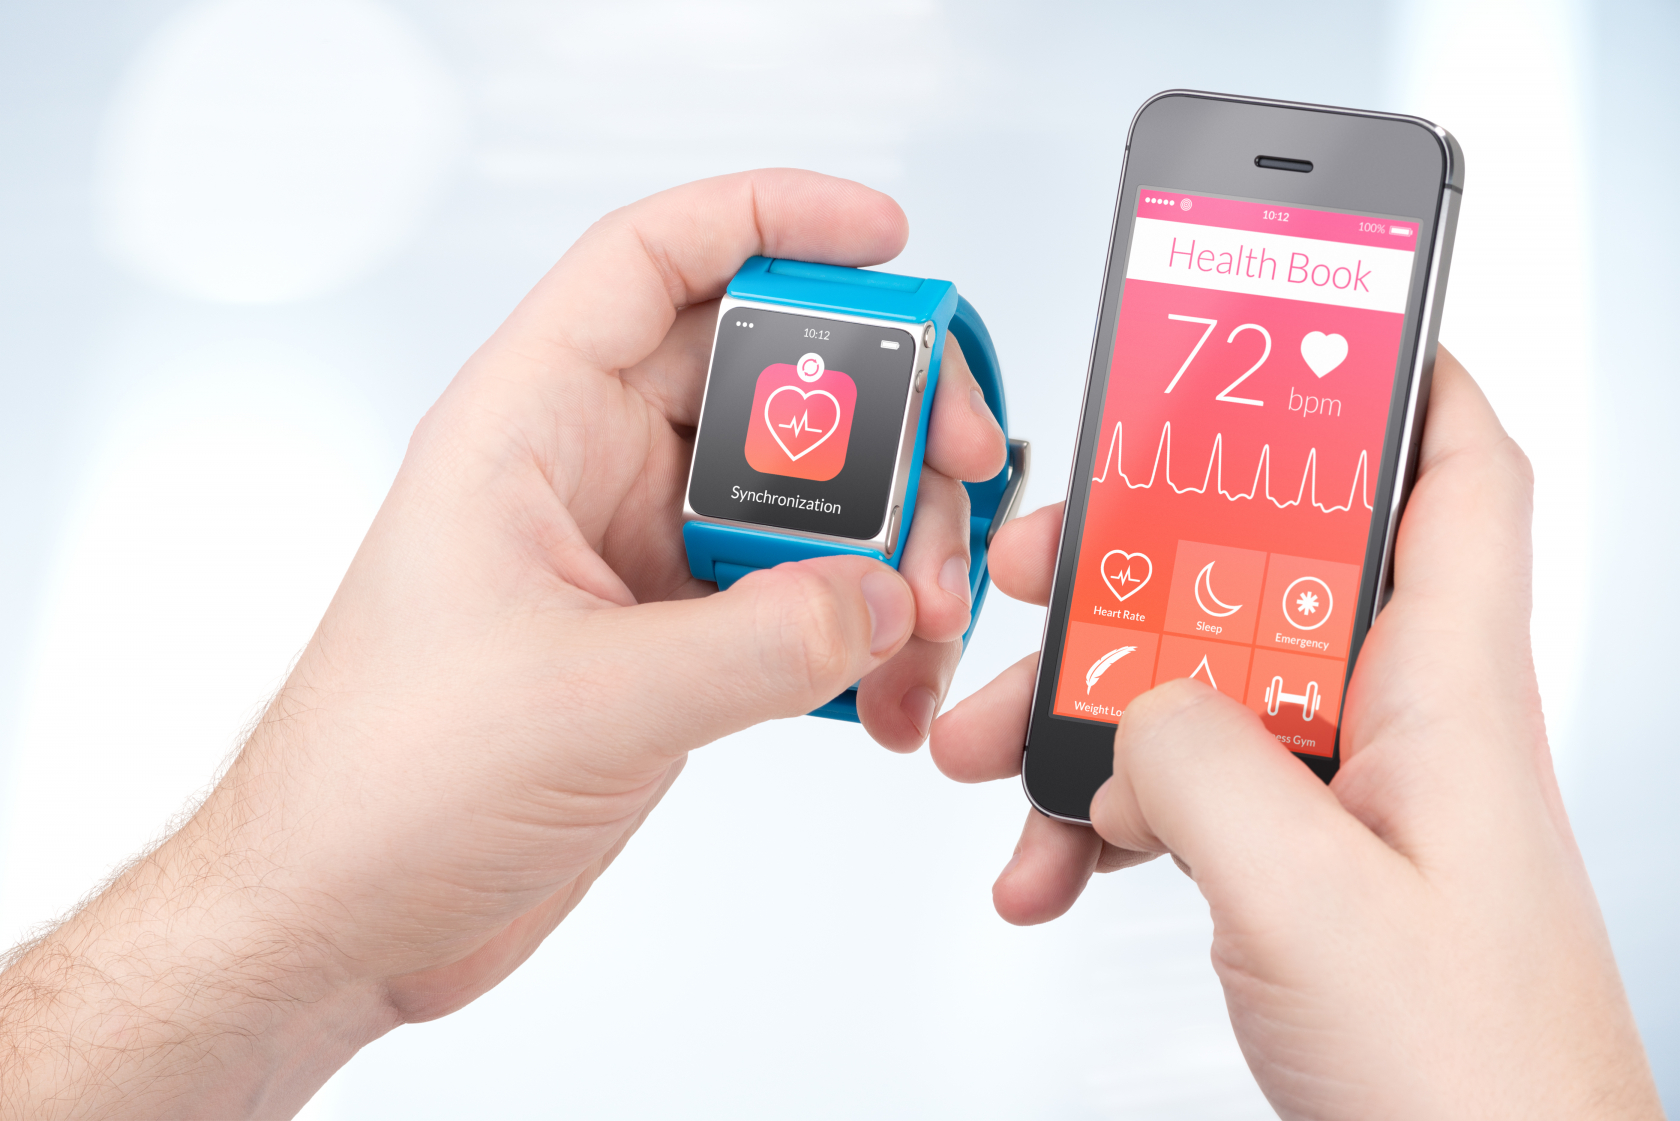 Opinion: The myth of general purpose wearables